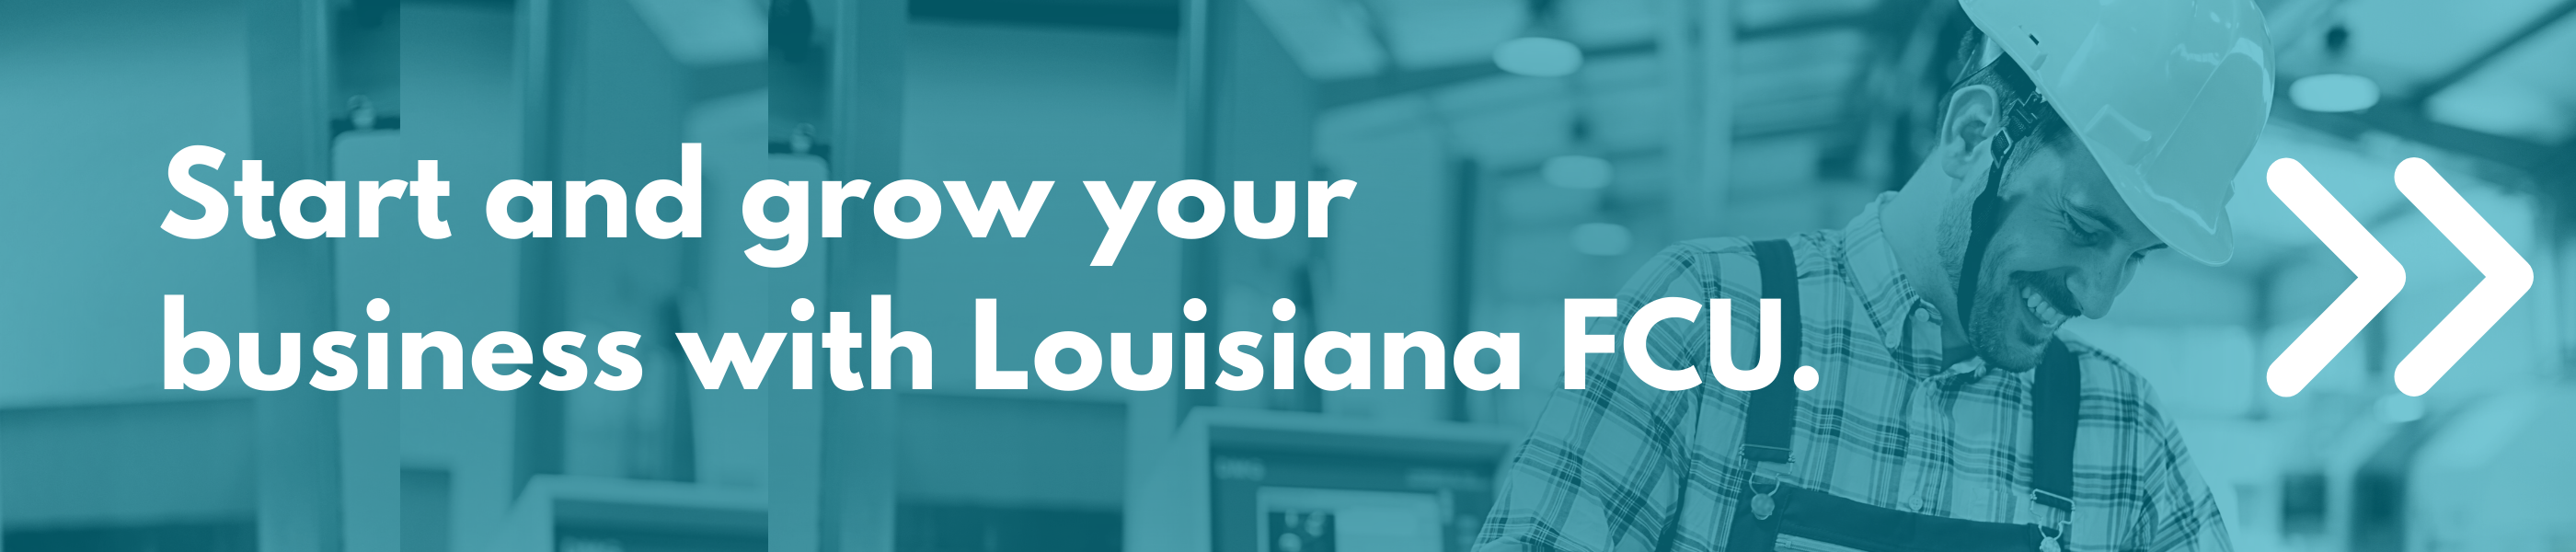 Start and grow your business with help from Louisiana FCU